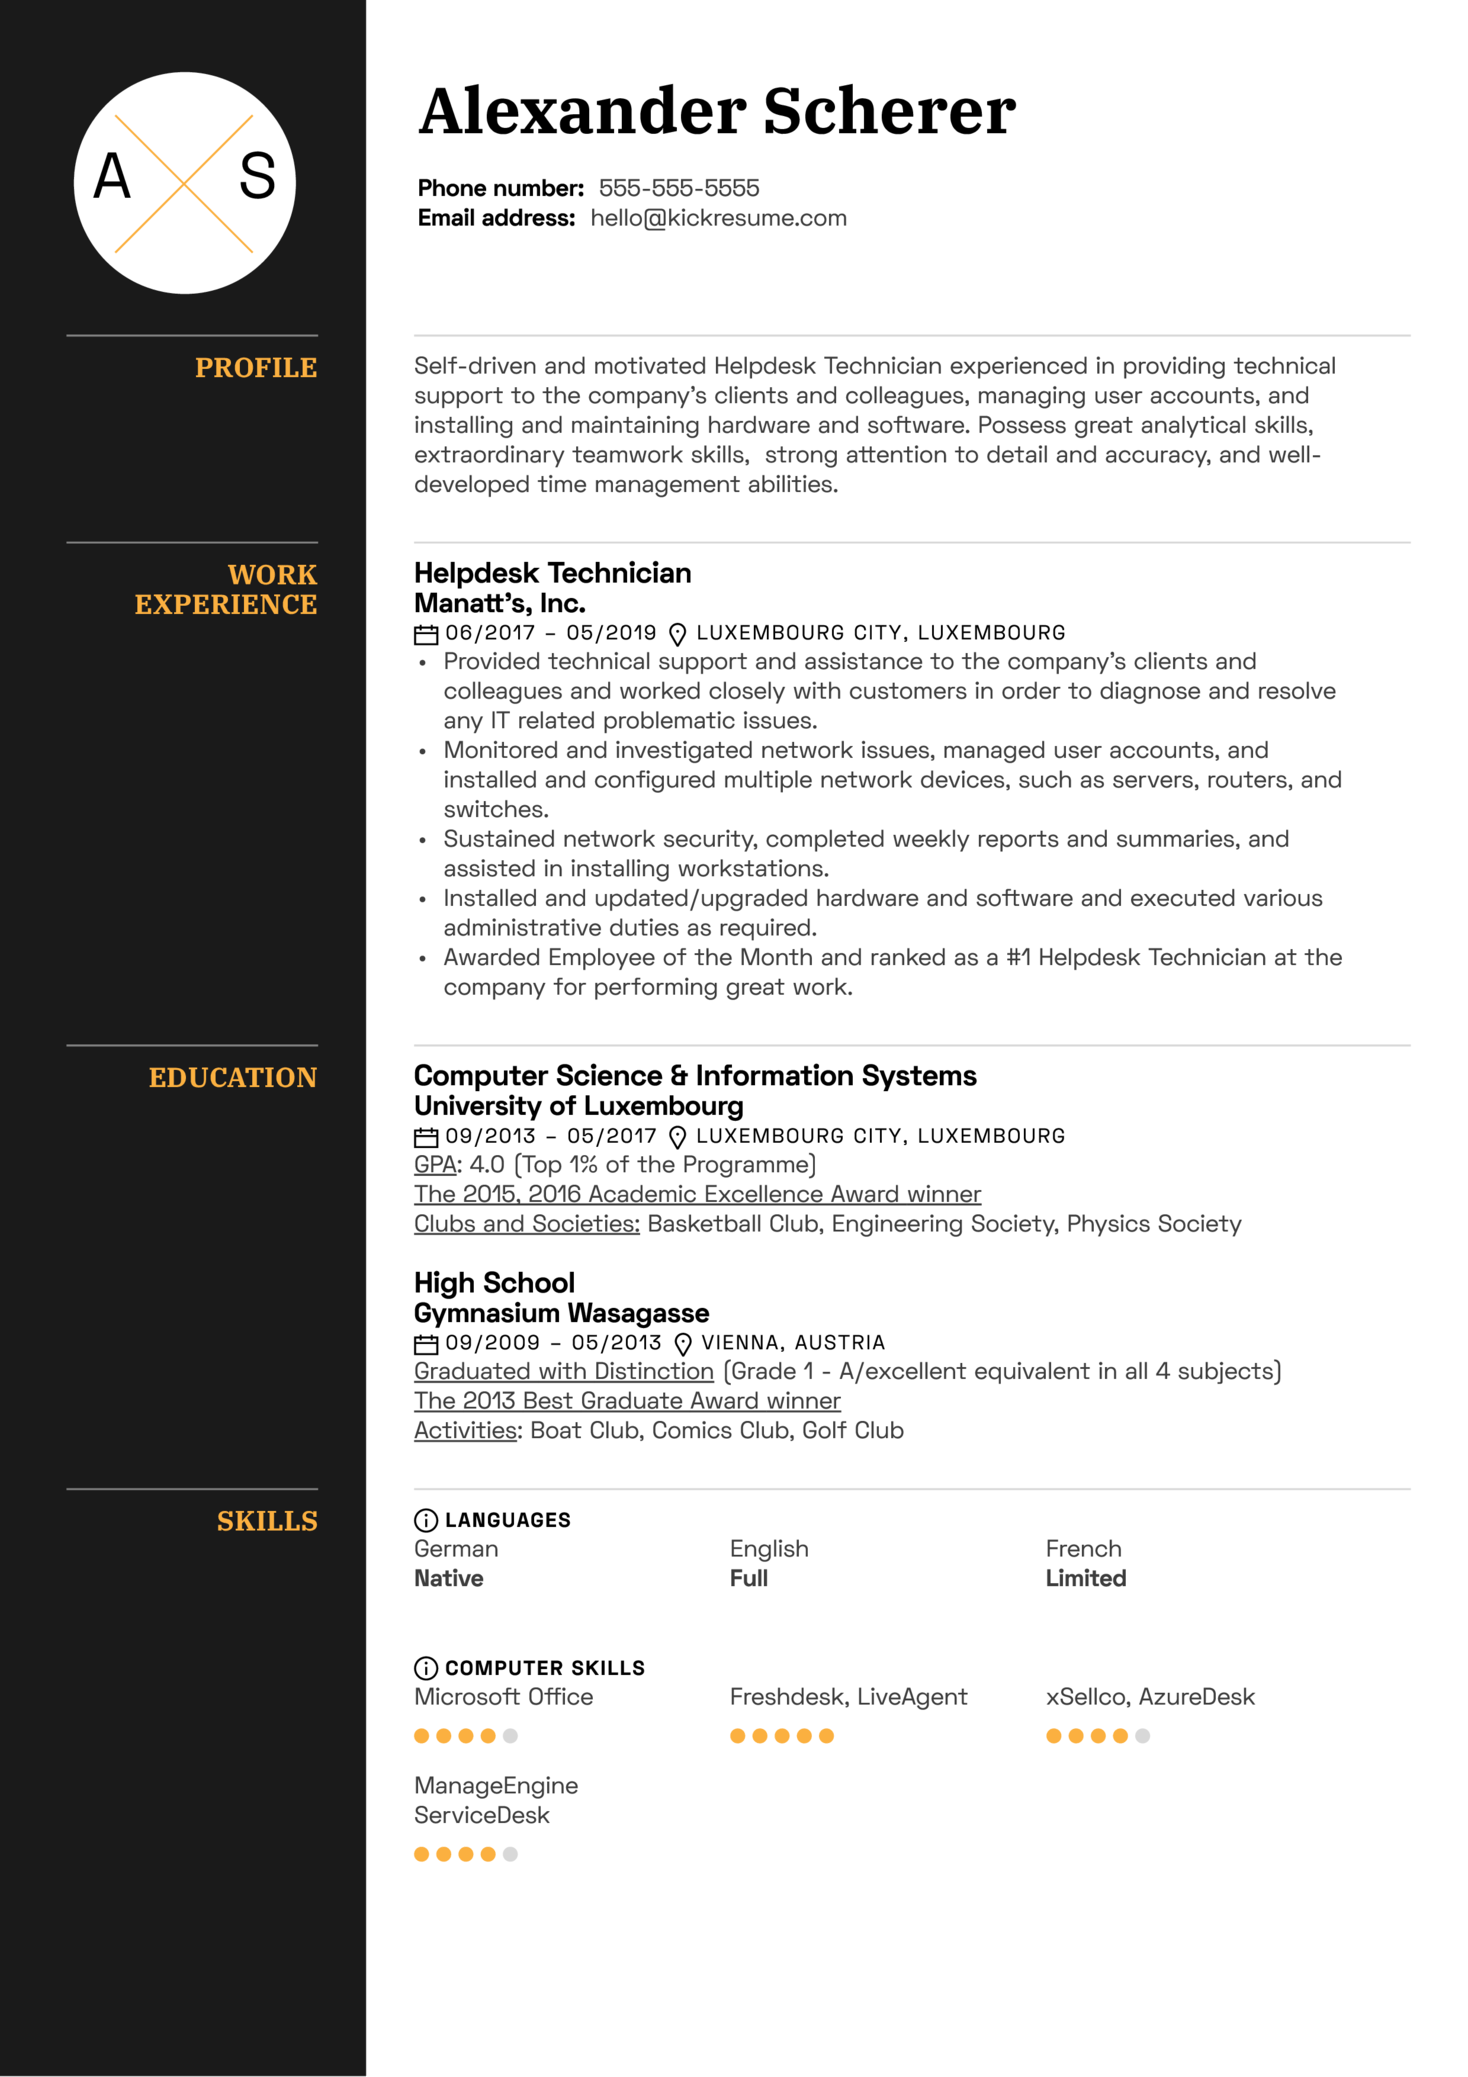 Helpdesk Technician Resume Sample